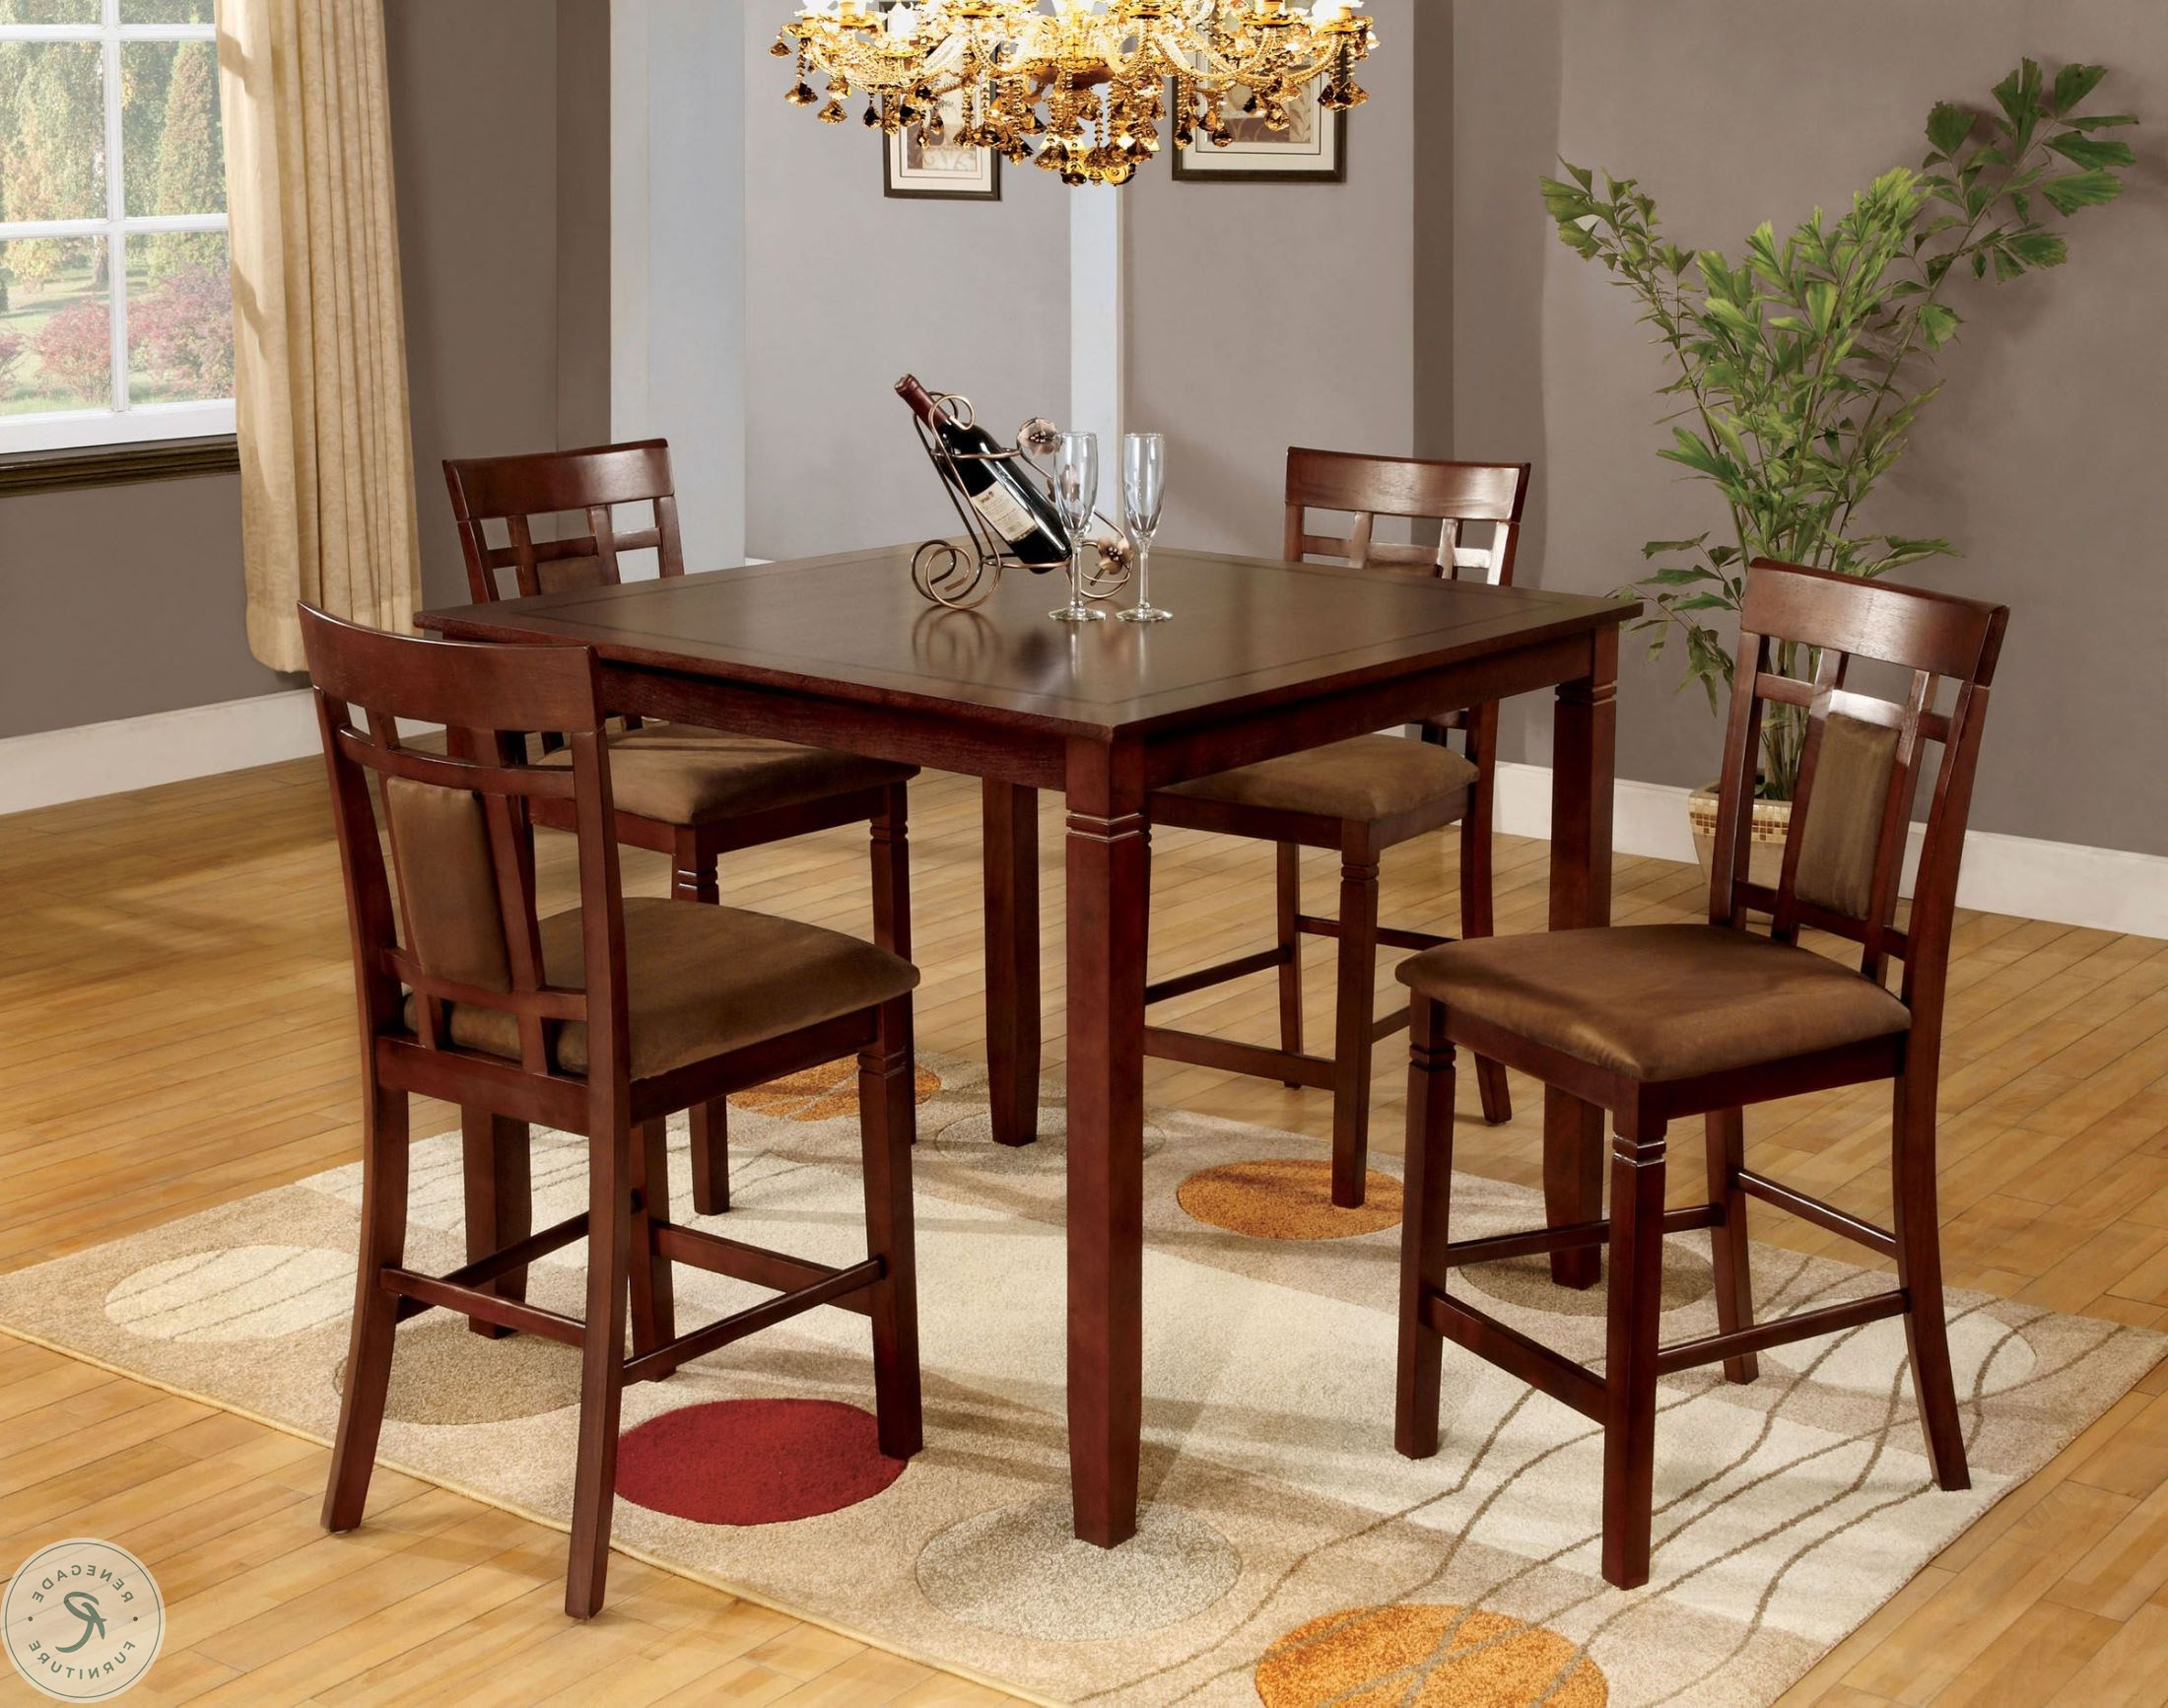 2017 Montclair Ii 5 Piece Counter Height Dining Table Set Throughout Anette 3 Piece Counter Height Dining Sets (Gallery 20 of 20)